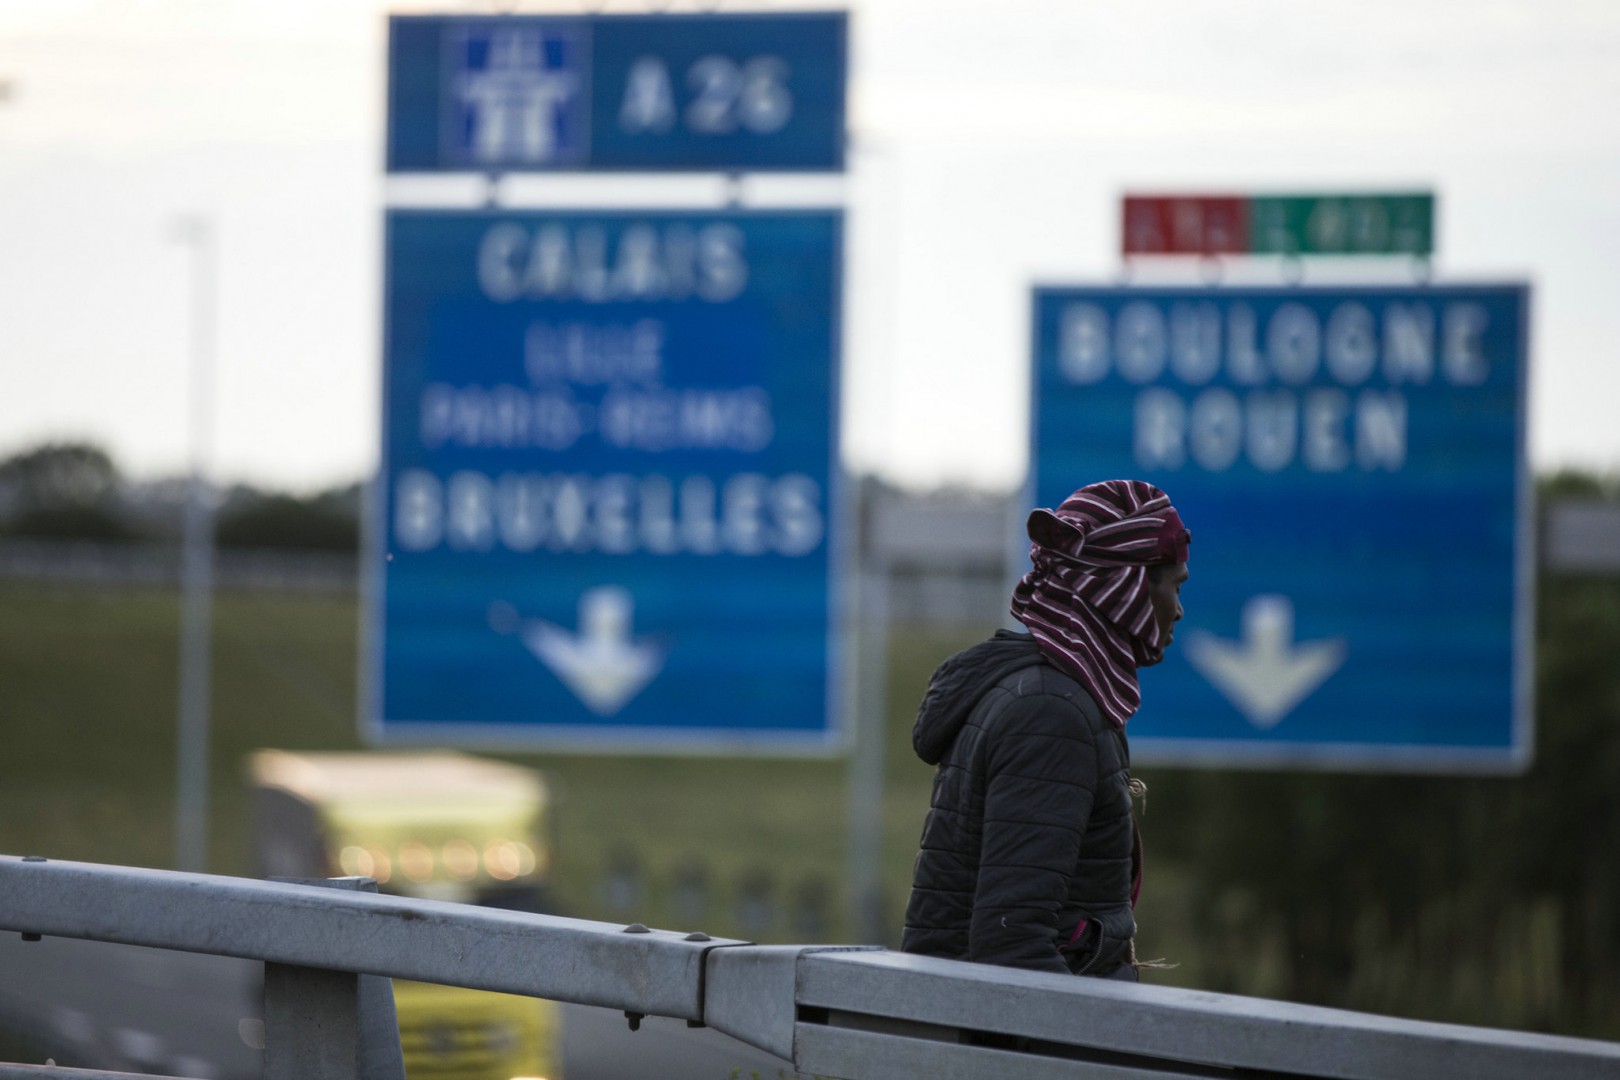 (150809) -- CALAIS, Aug. 9, 2015 (Xinhua) -- A migrant walks next to the Shuttle railroad looking for a chance to jump over the fence and access the Channel Tunnel, in Calais, northern France, Aug. 6, 2015. Calais, where the French end of the Channel Tunnel is located, has been flooded by growing flows of migrants mainly from Libya, Eritrea, Sudan and Syria who fled war, insecurity and poverty. Camping out in Calais zone, they are trying to board lorries and trains heading to Britain in hope to find a better life in London. (Xinhua/Franck Mahe)